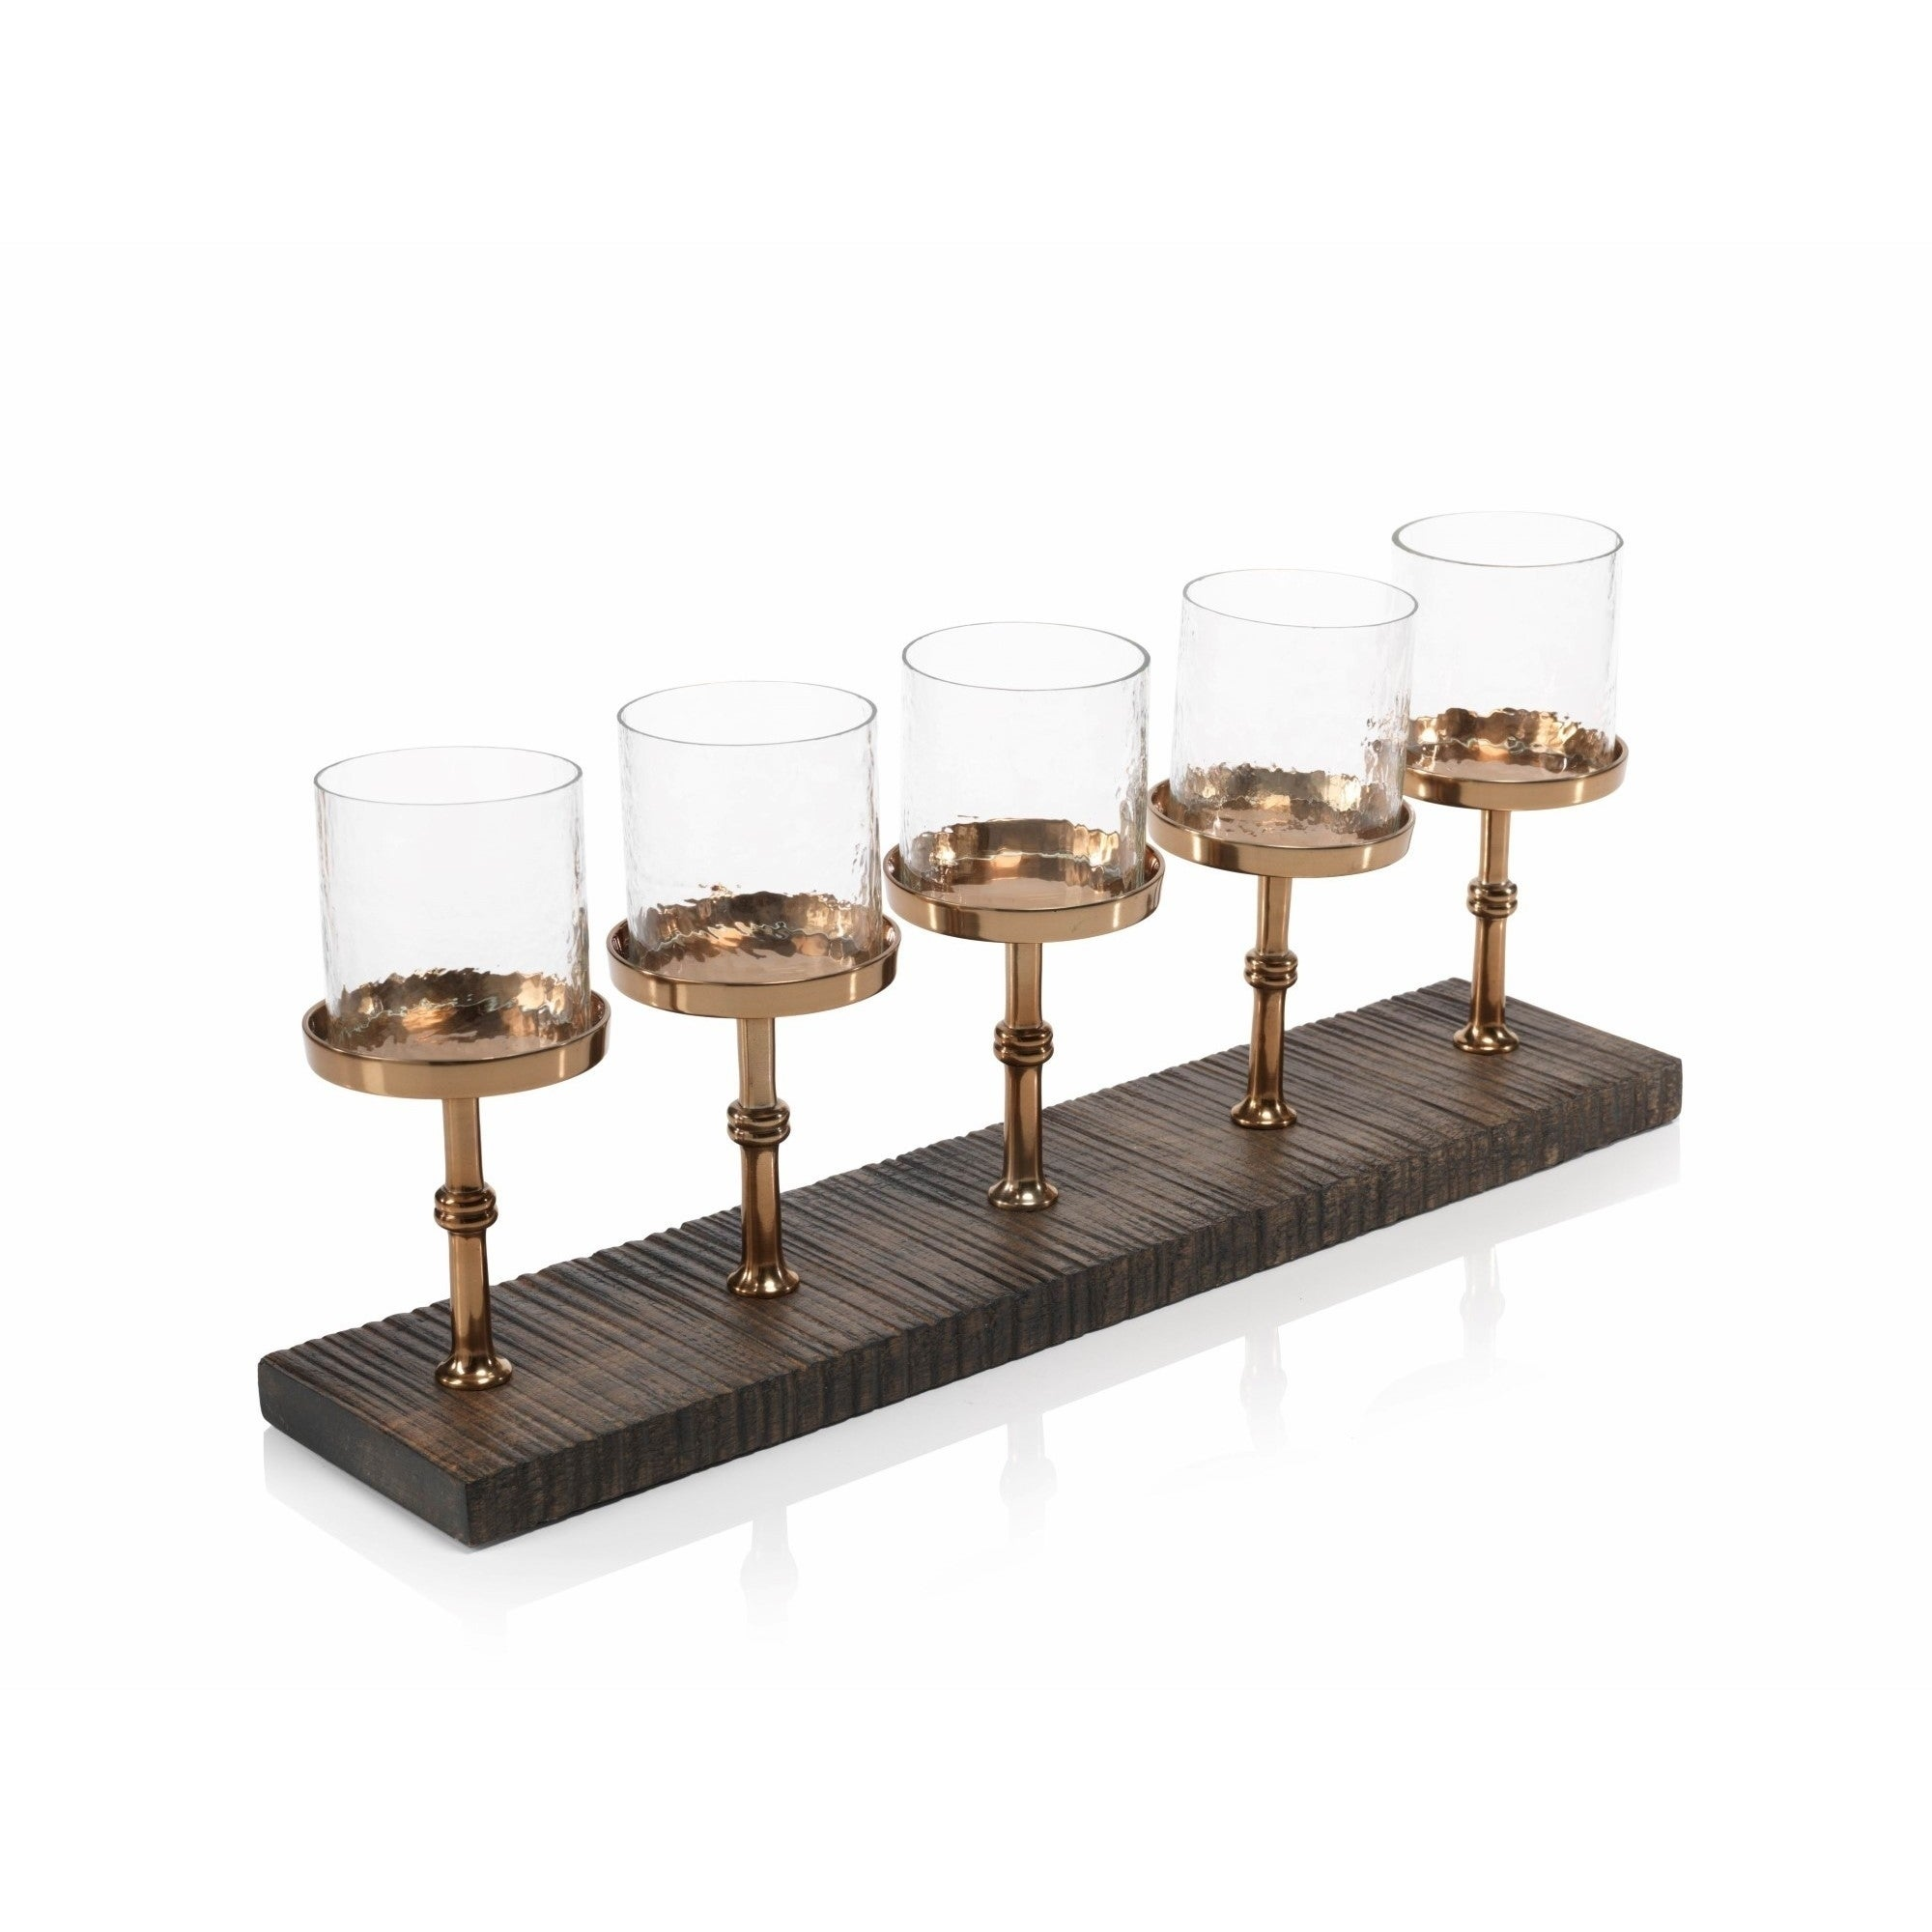 Regis 22 Long 5 Tier Centerpiece Candle Holder Gold Overstock 16372932